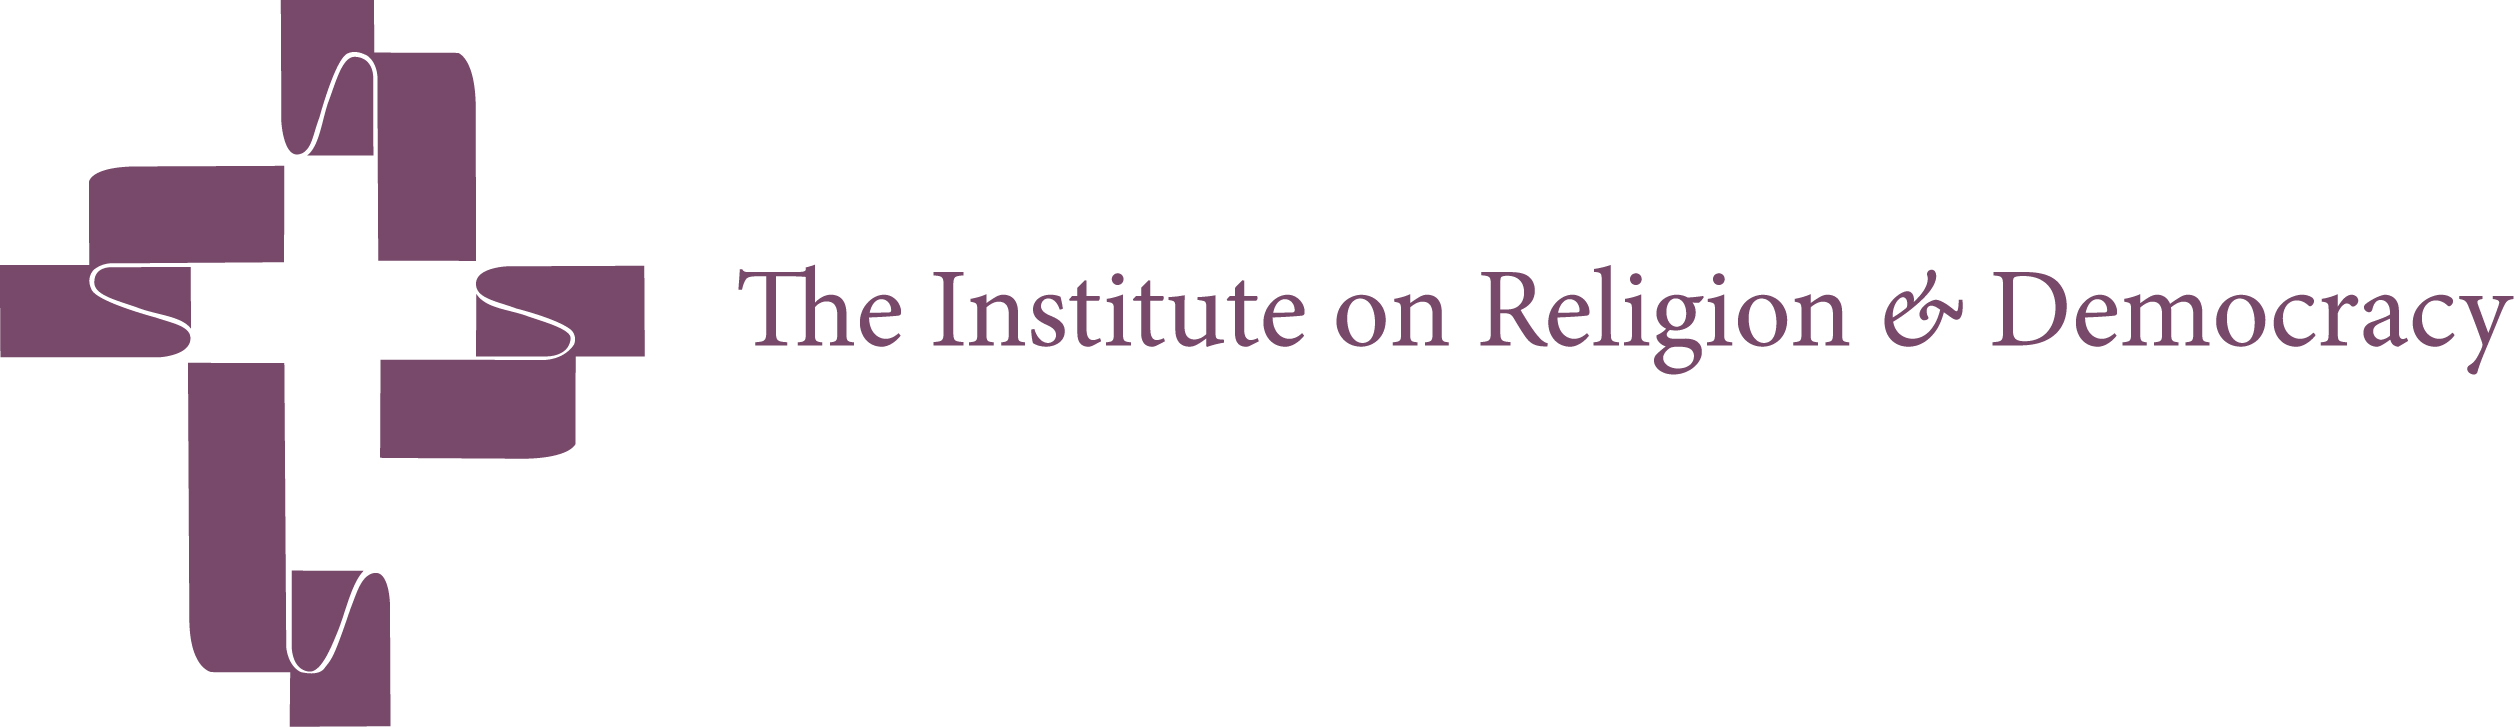 Institute on Religion and Democracy Cross